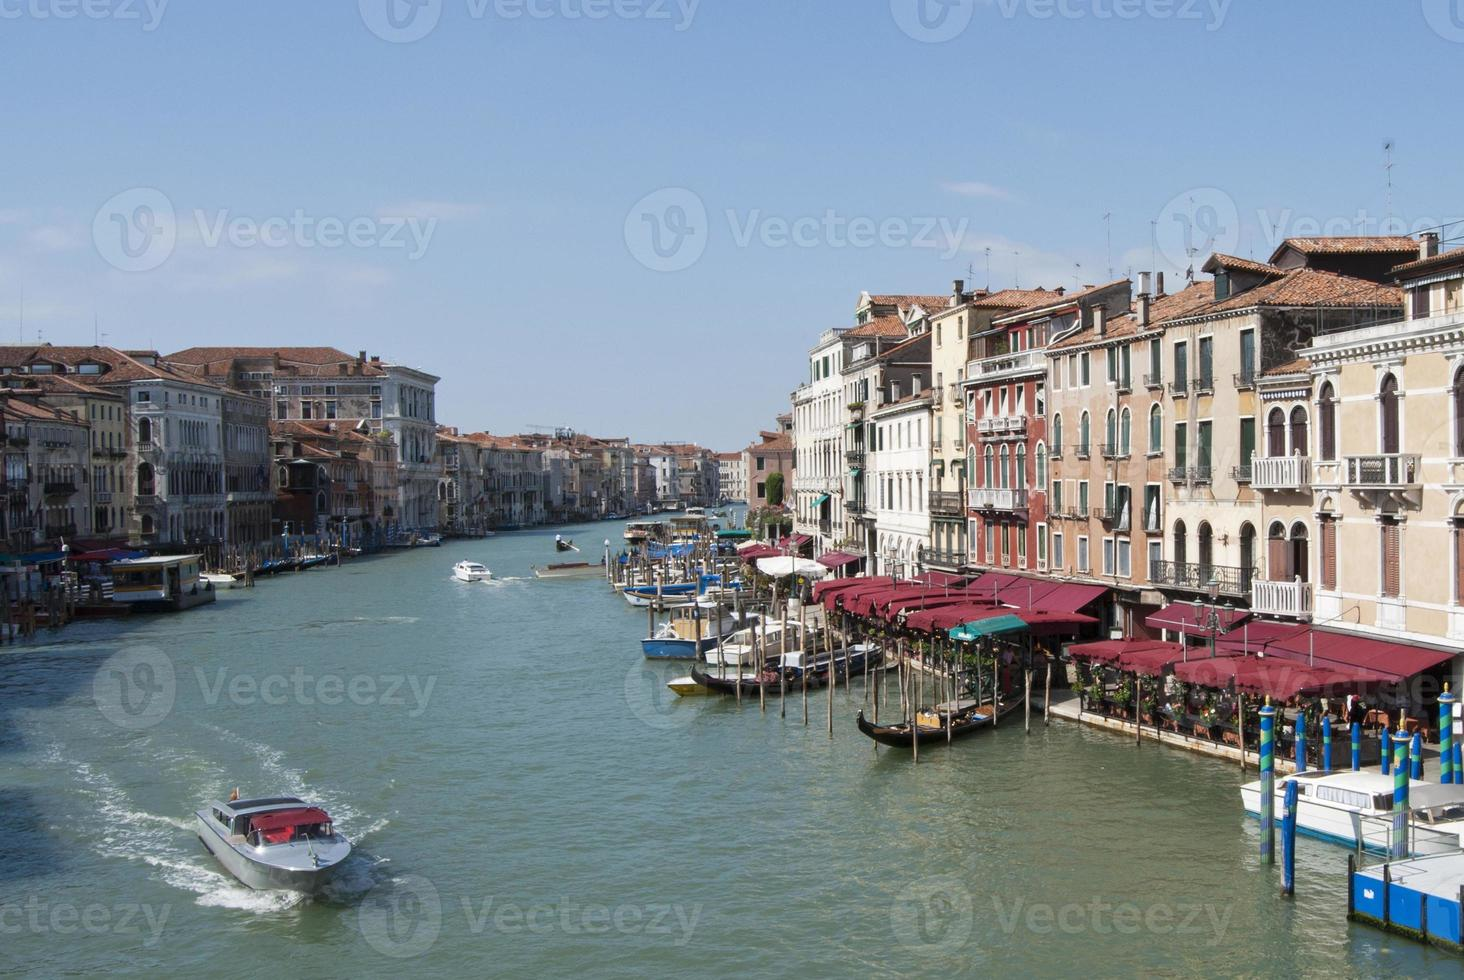 Venice Grand Canal view photo